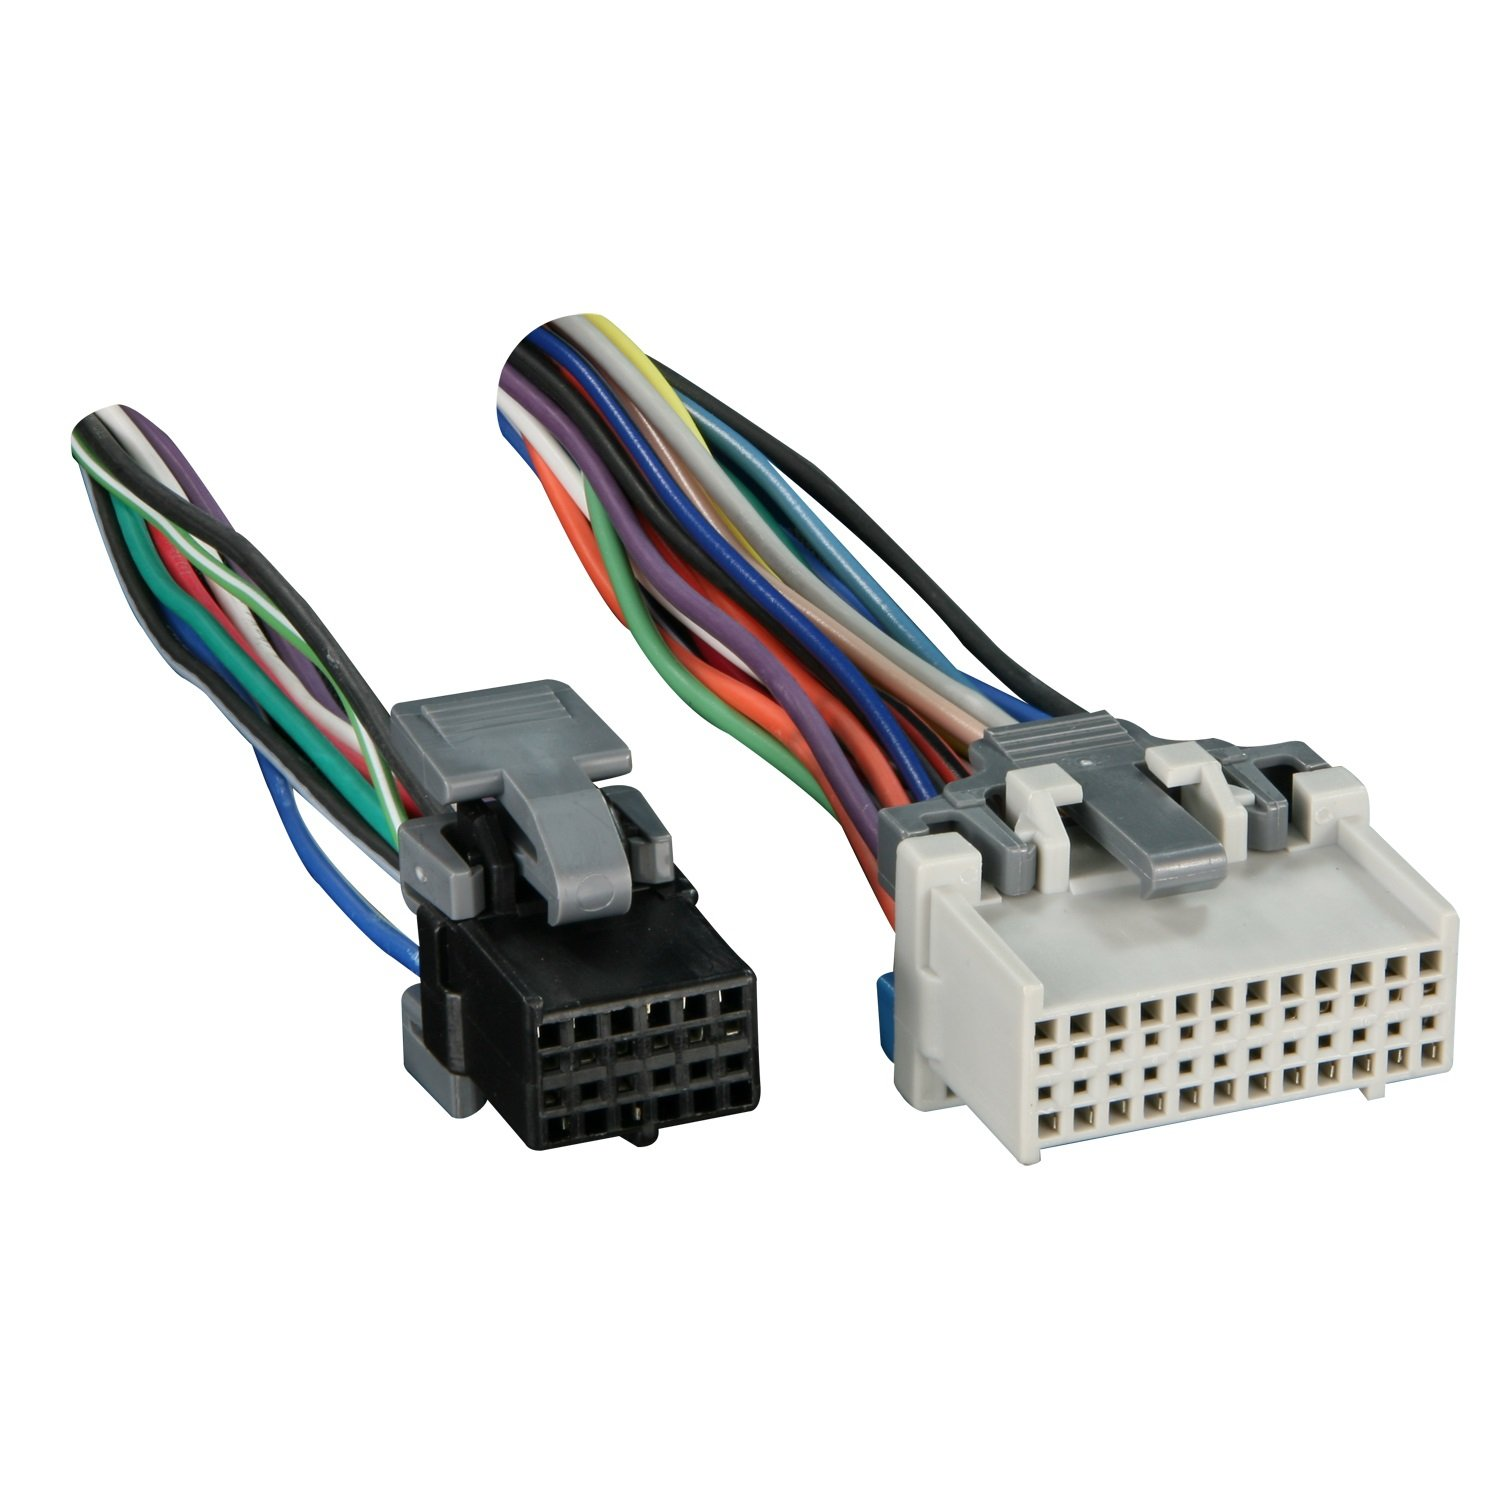 711log4bdML._SL1500_ amazon com metra turbowires 71 2003 1 wiring harness car electronics  at bayanpartner.co